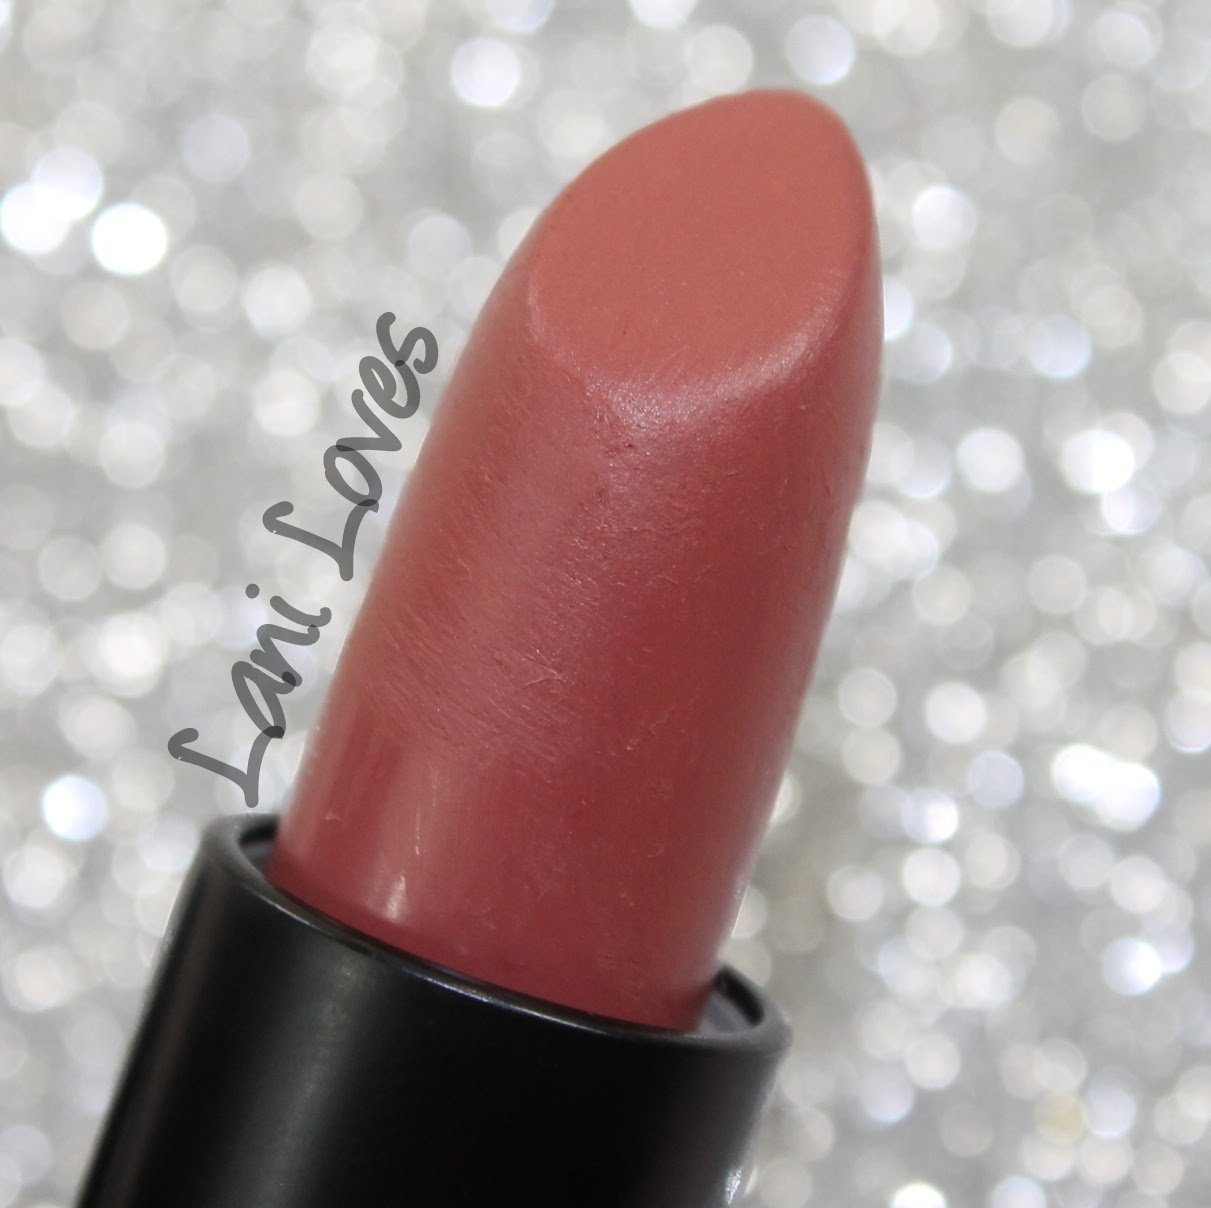 Kat Von D Painted Love Lipstick - Lolita Swatches & Review